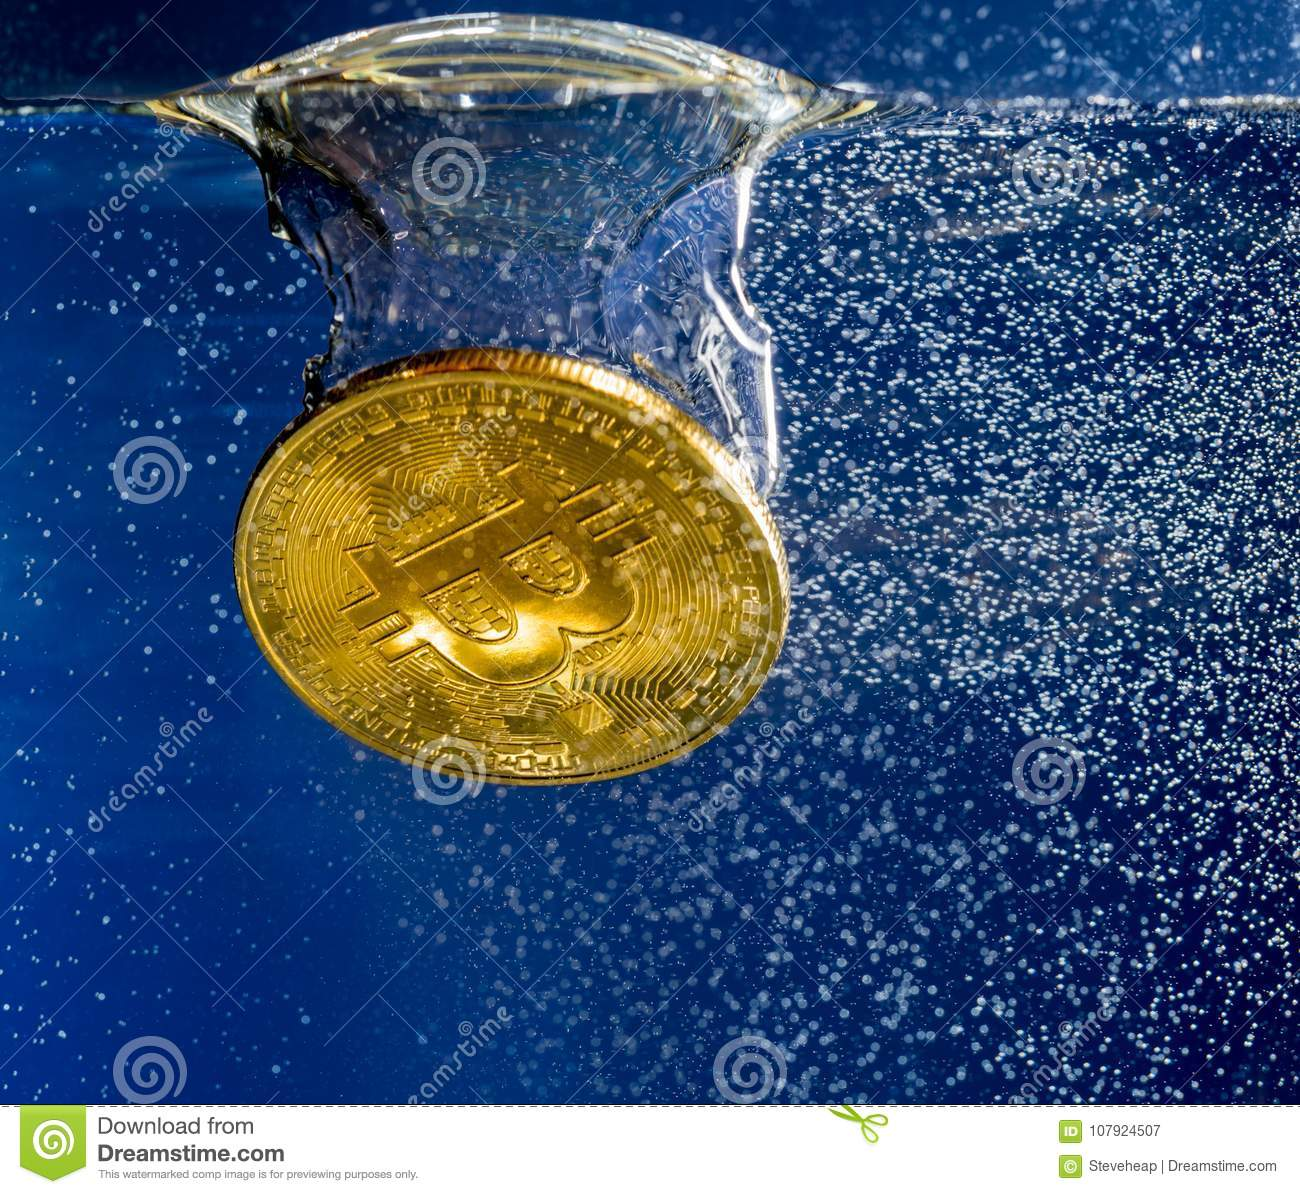 Bitcoin Sinking Through Water As Illustration Of Falling Price Stock Image - Image of finance ...